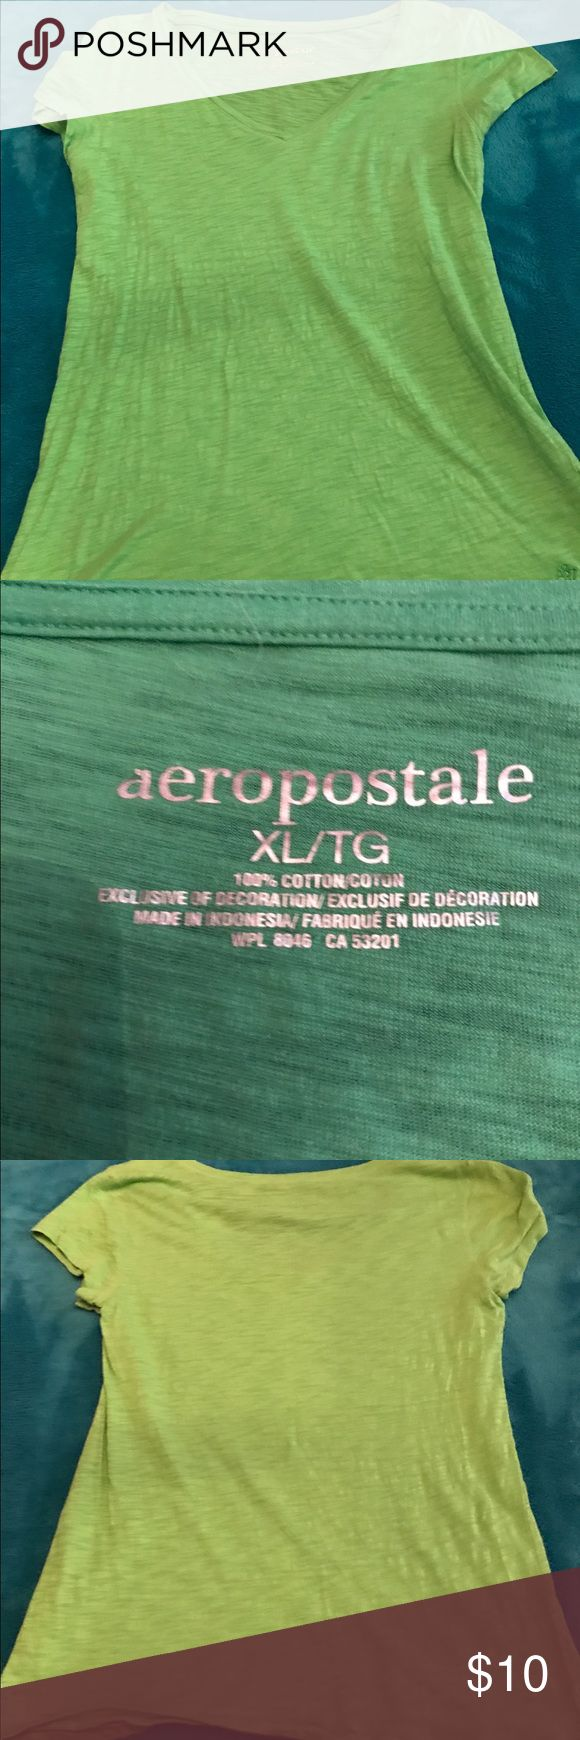 WOMEN'S AEROPOSTALE TEE SIZE XL Beautiful green women's Aeropostale tee size XL worn only a few times in Excellent Condition second pic shows true color Aeropostale Tops Tees - Short Sleeve